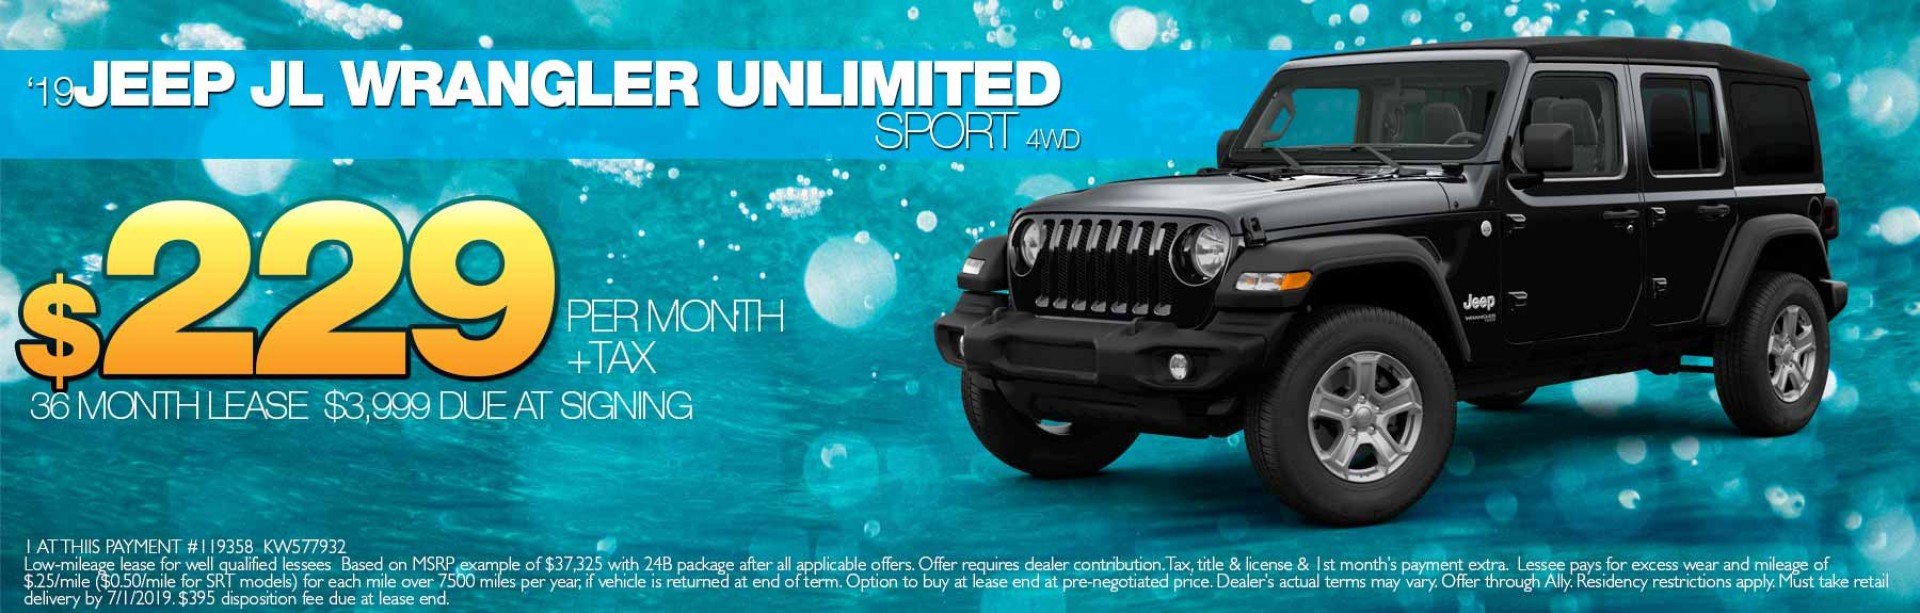 2019 Wrangler Unlimited lease offer